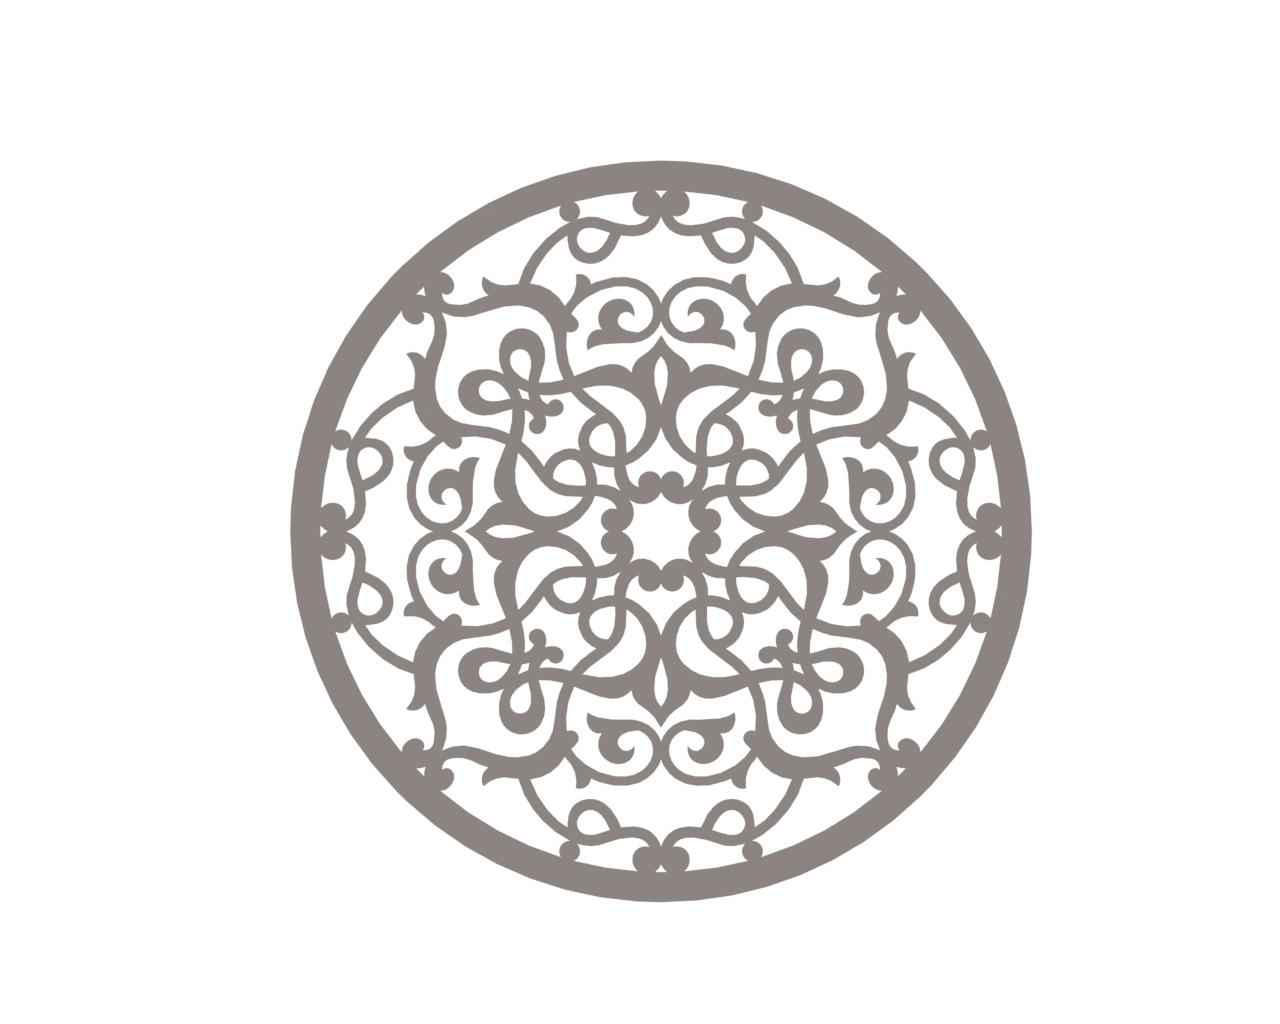 Stylized Mandala Ornament Art Free DXF File